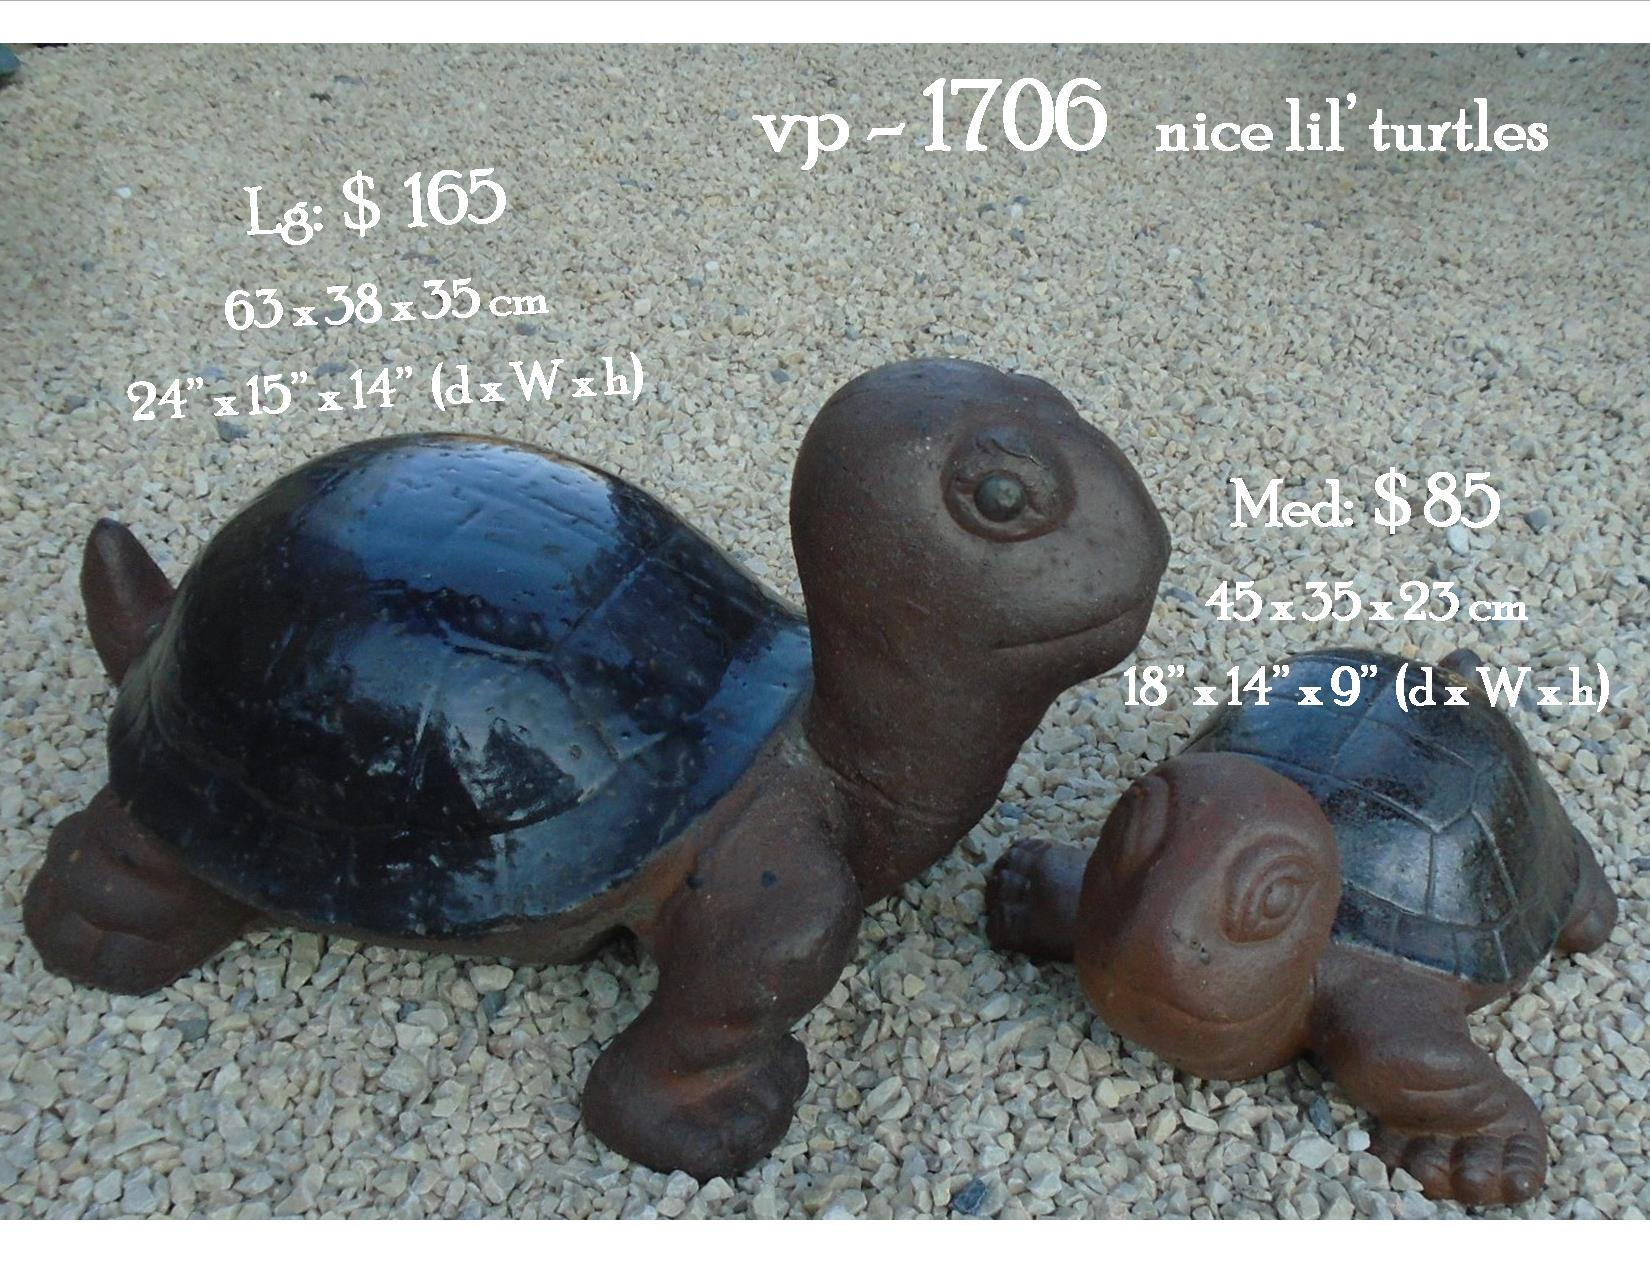 vp_-_1706___nice_little€™_turtles_